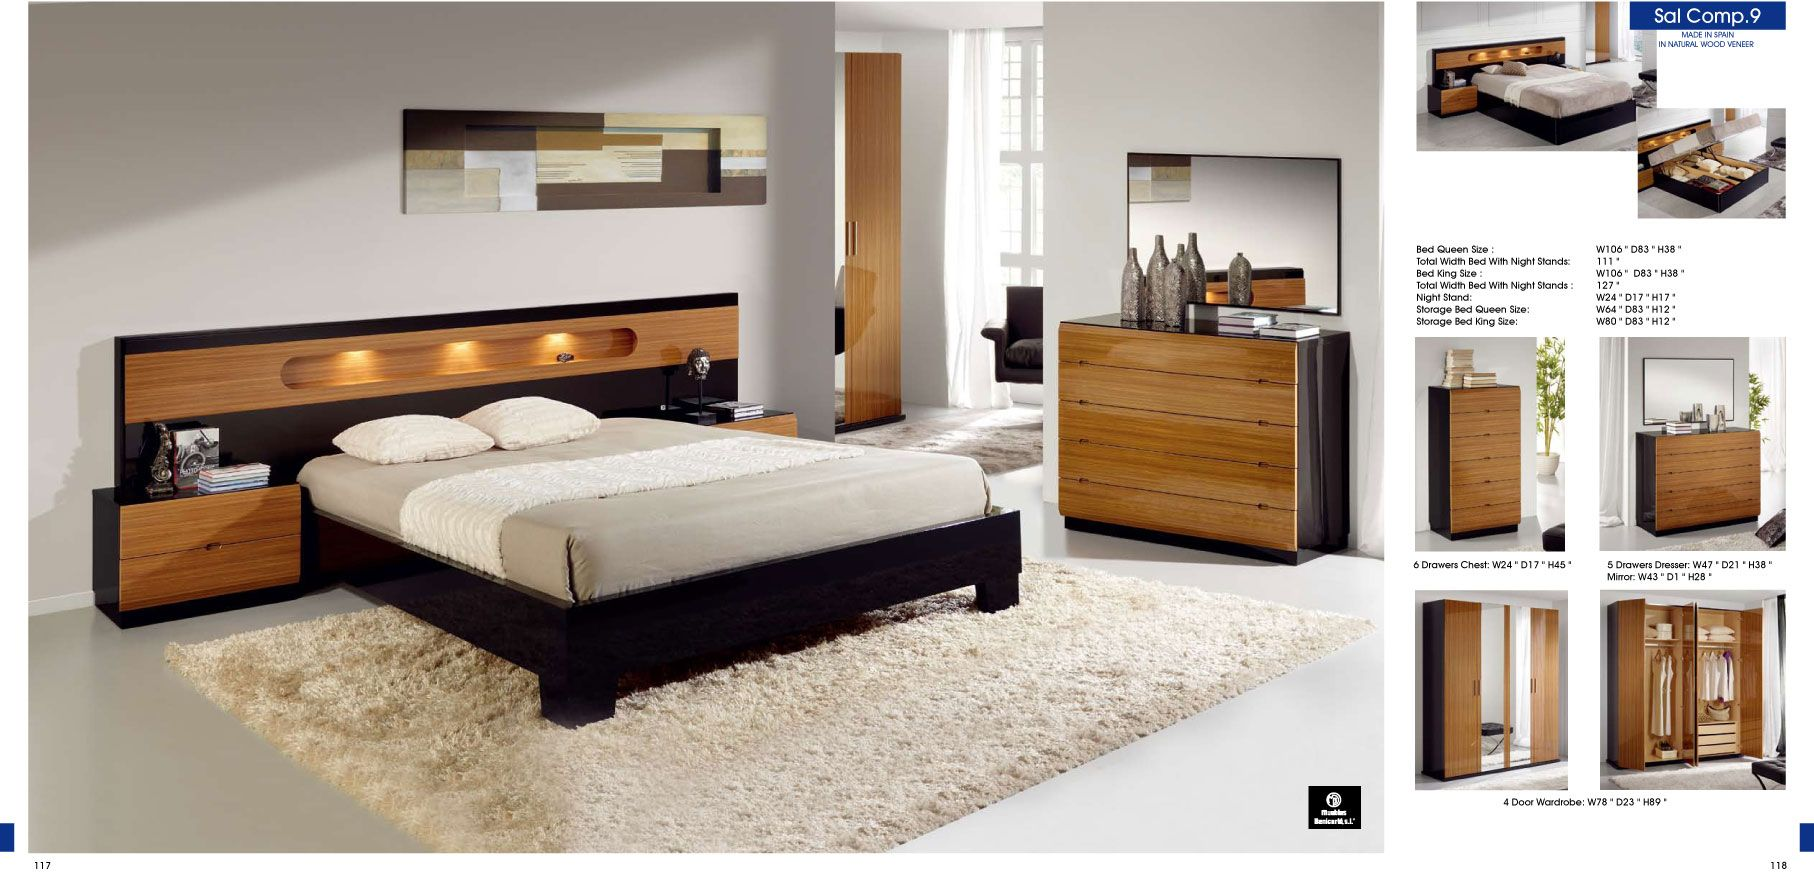 Elegant Cheap King Size Bedroom Sets 5 Ikea Bedroom Sets Catalog ...